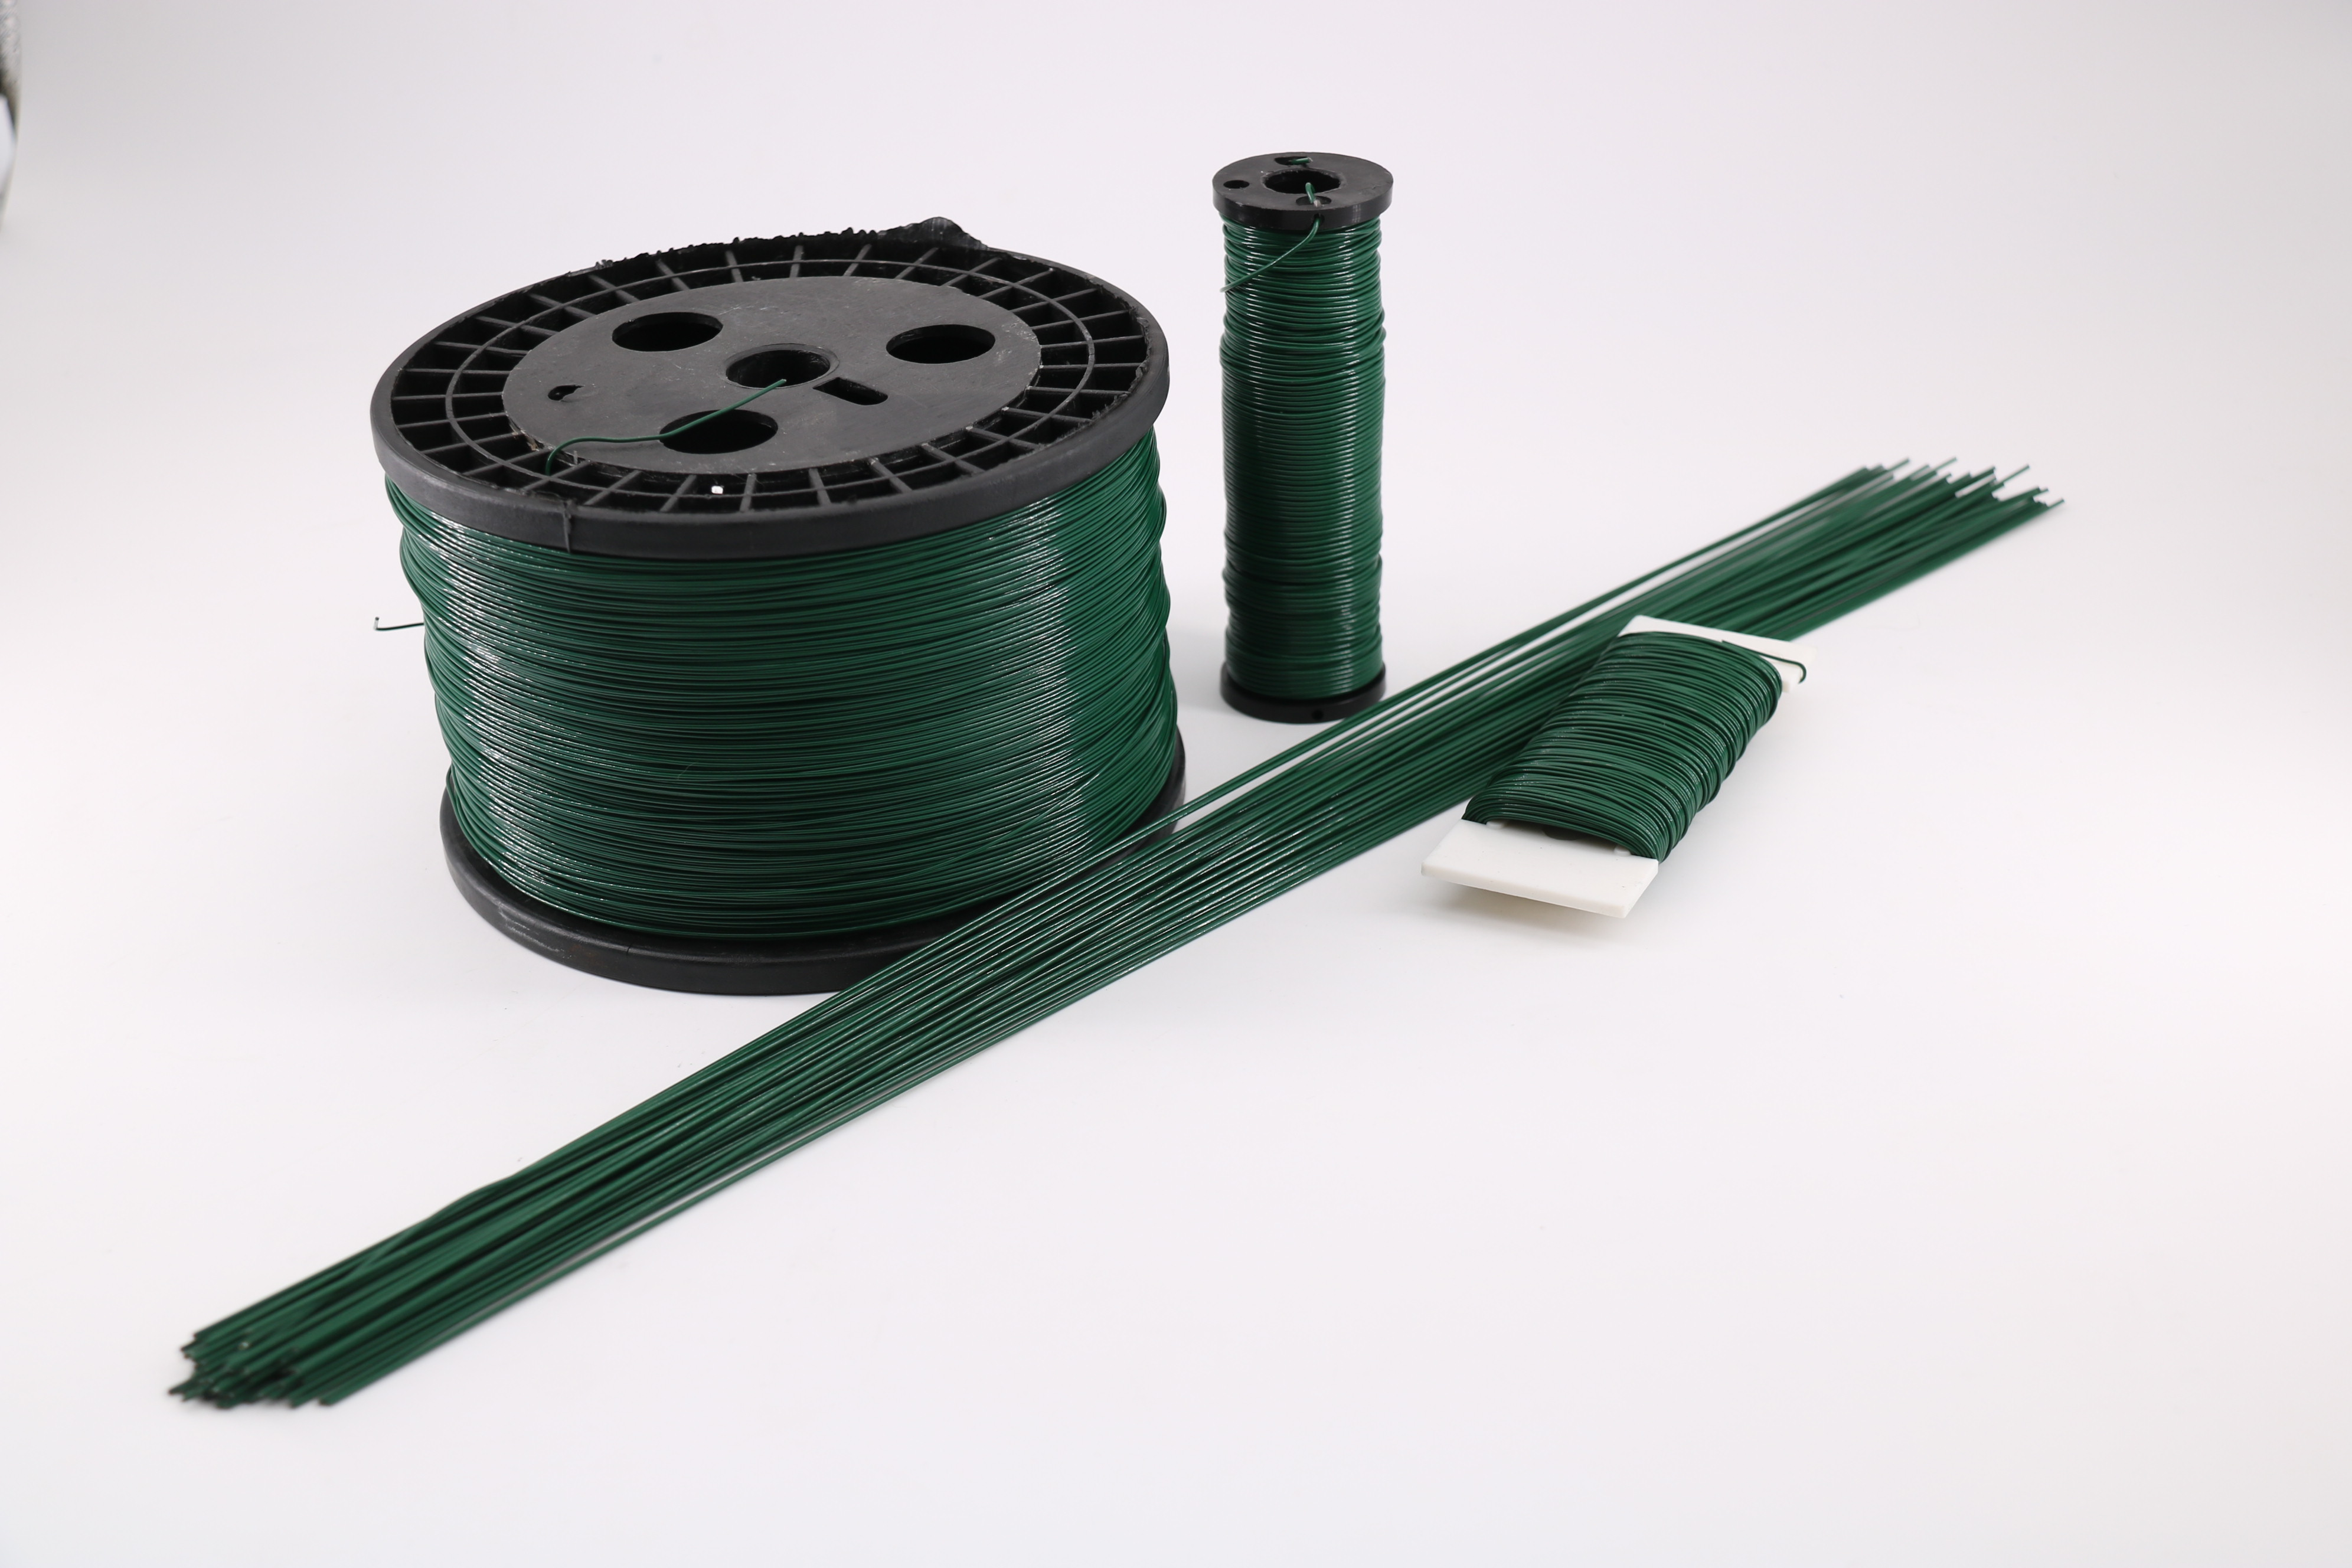 Mesh and Wire and Netting Products Expert - MWN GROUP